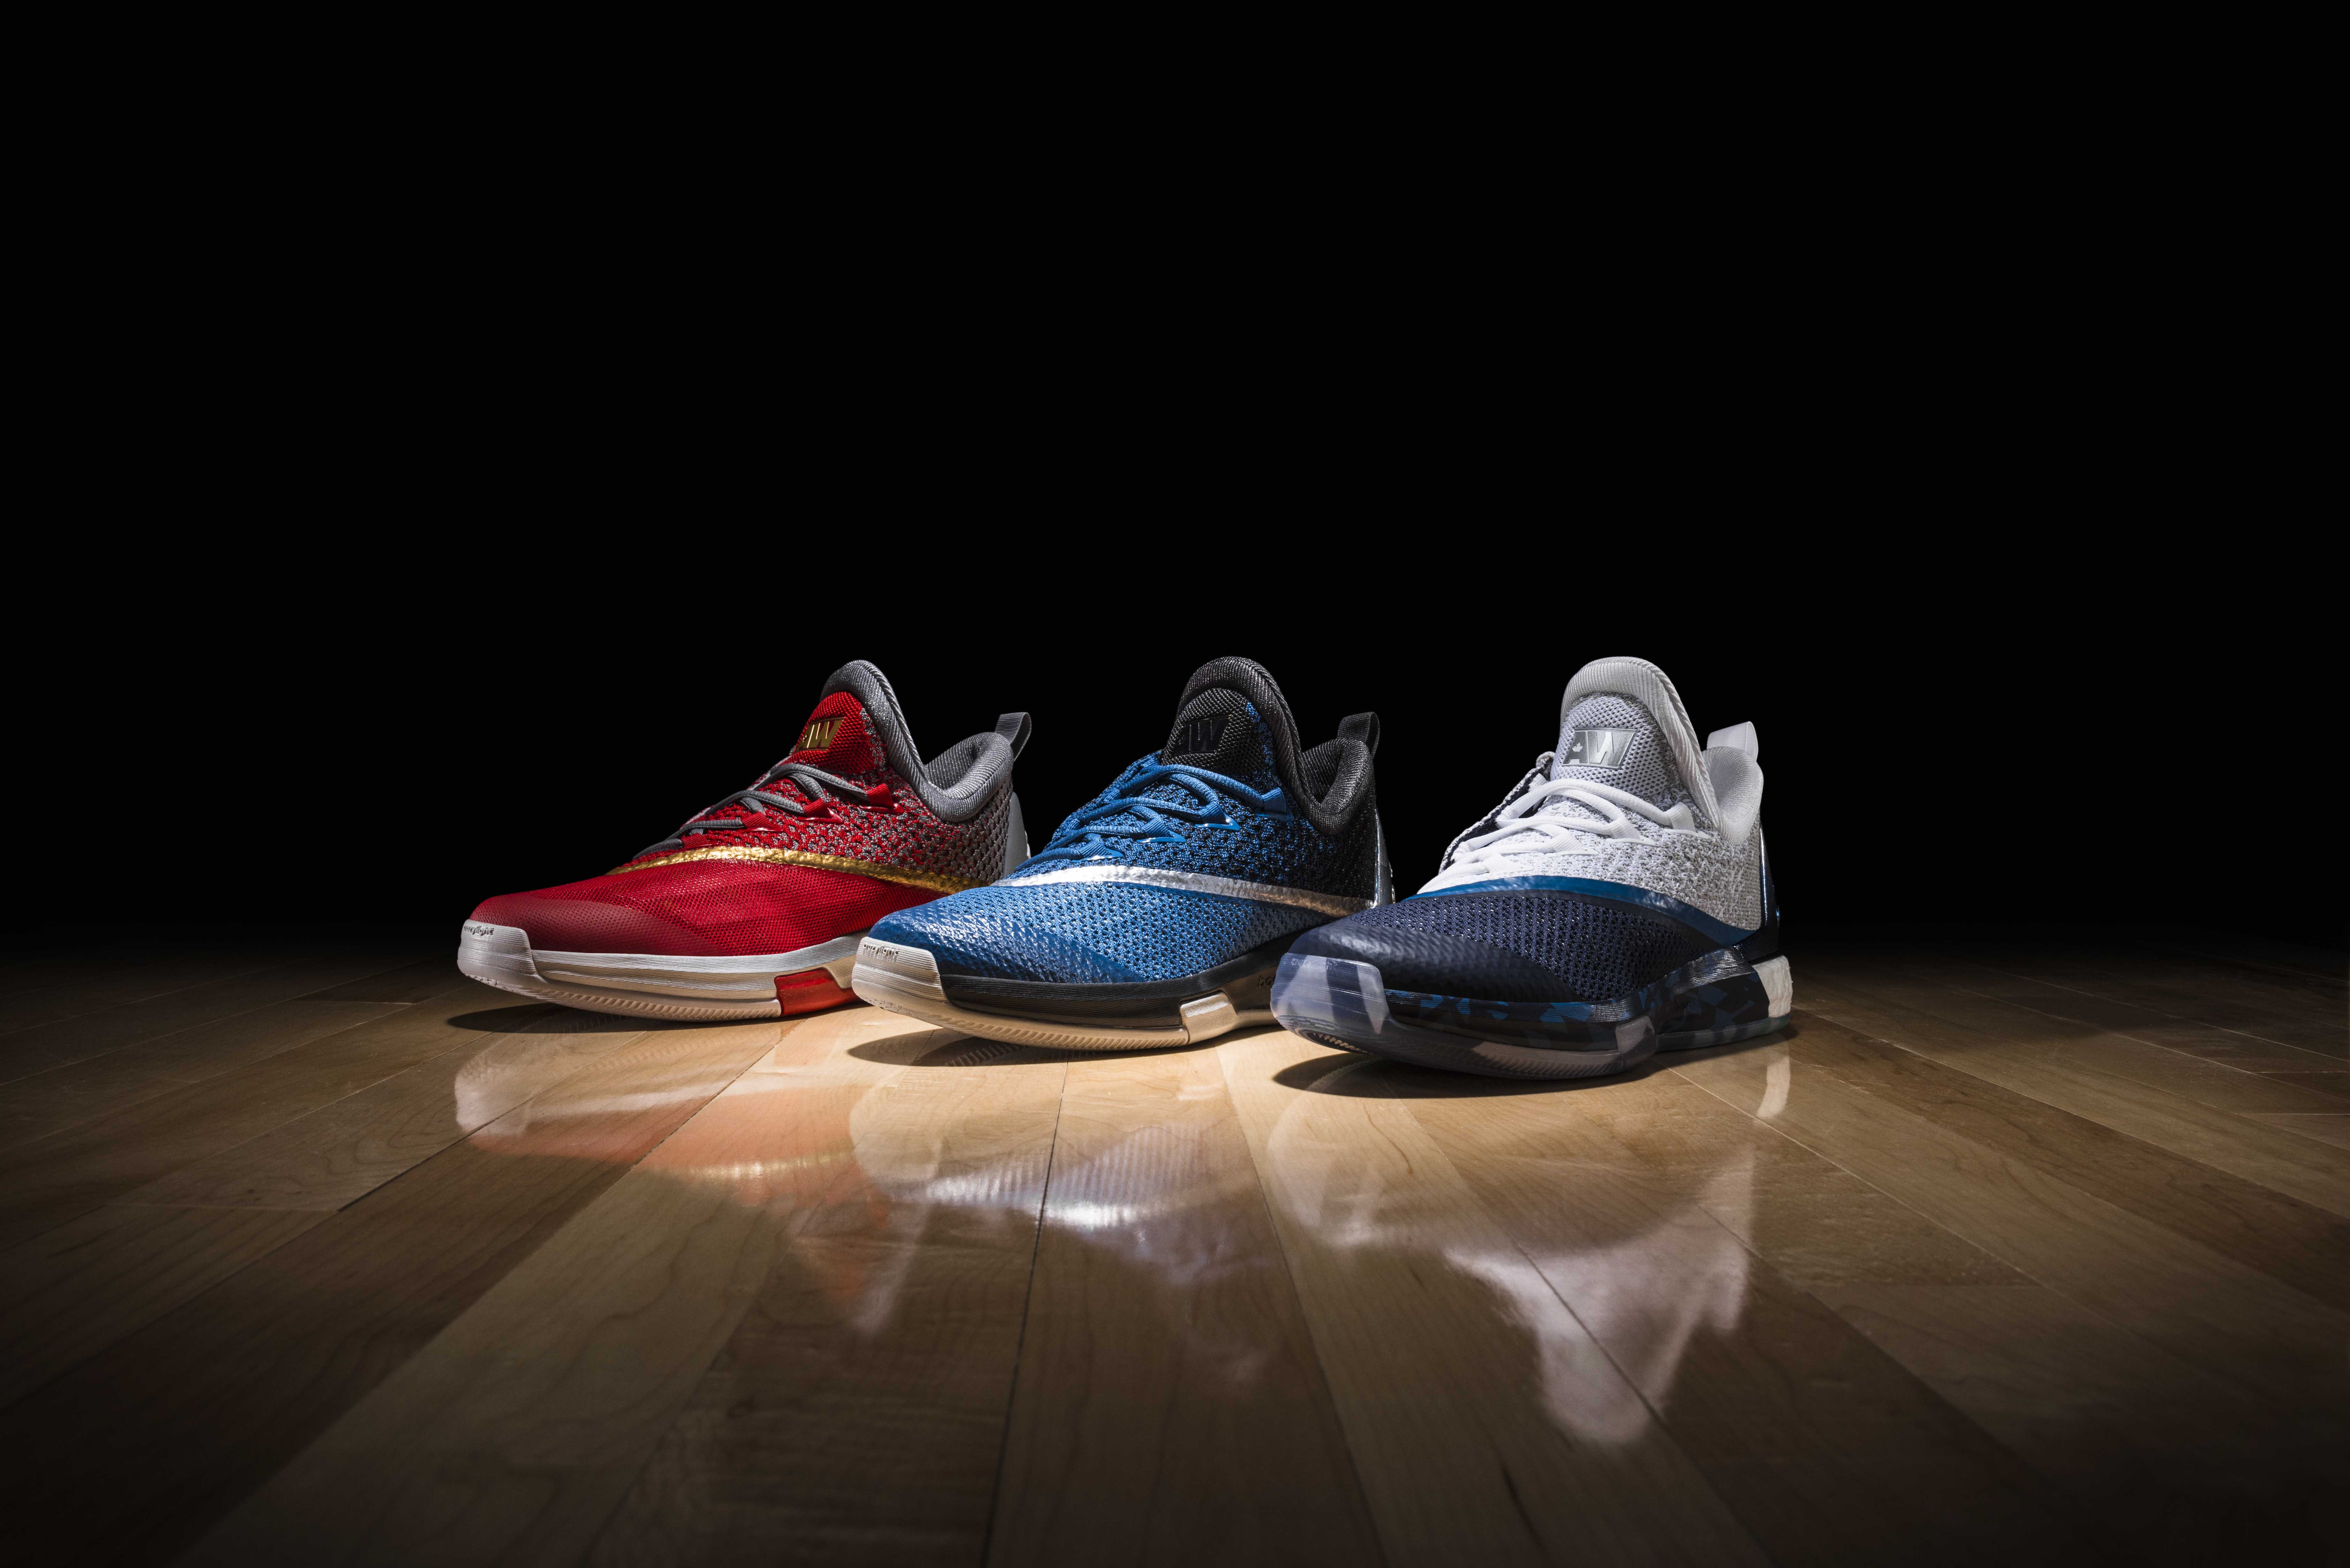 separation shoes 4cf21 8d3ce adidas Crazylight 2.5 Wiggins - Group